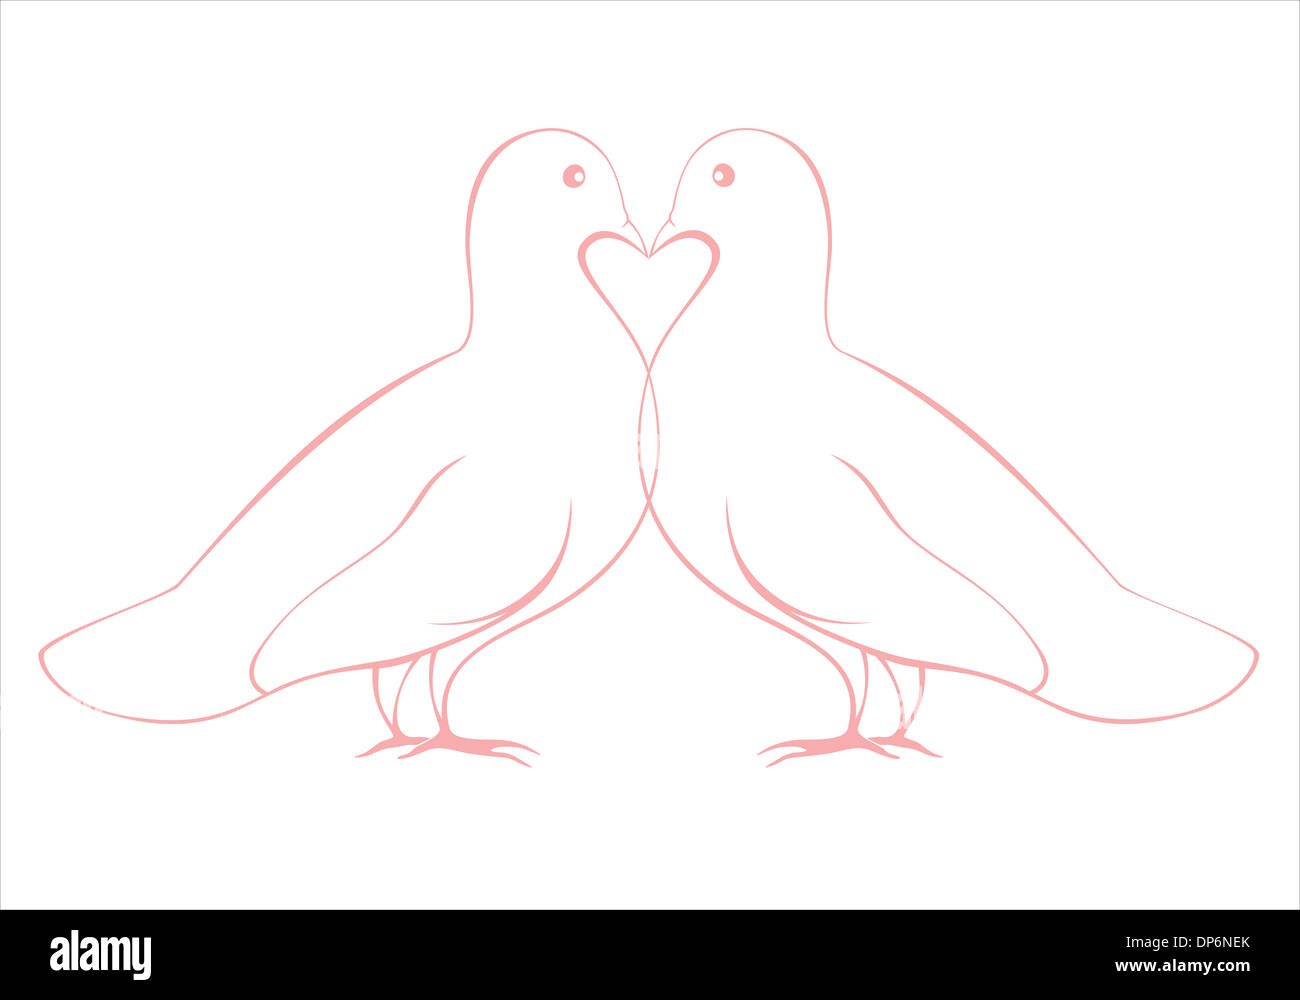 pair of doves in love illustration with a heart symbol, Valentines day or wedding card design - Stock Image